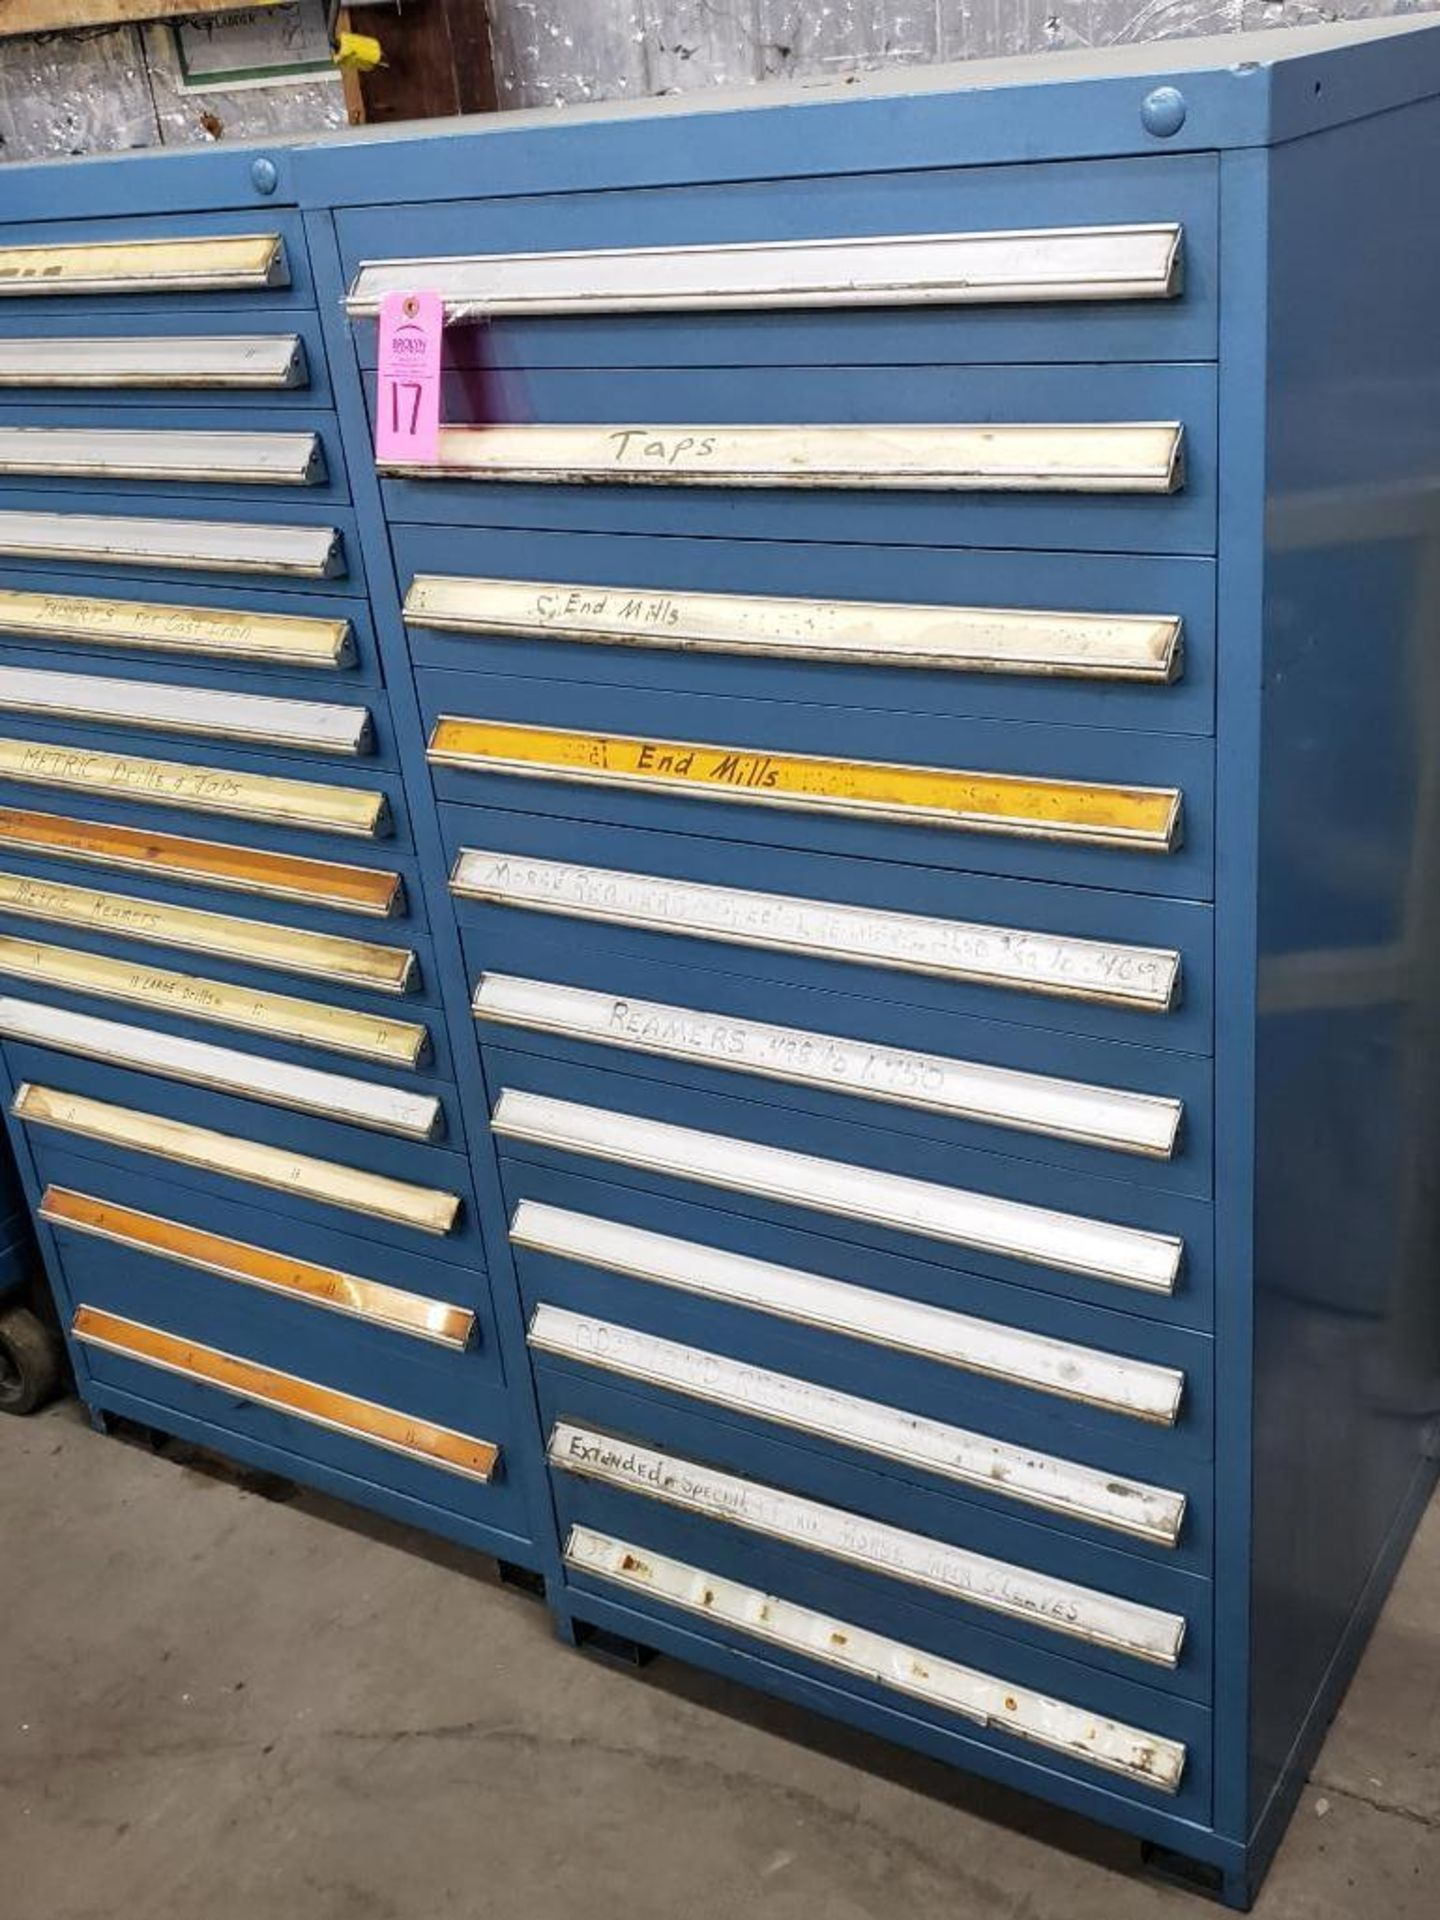 Lot 17 - 11 drawer Stanley Vidmar. Overall Dimensions 59Tx30Wx28D.